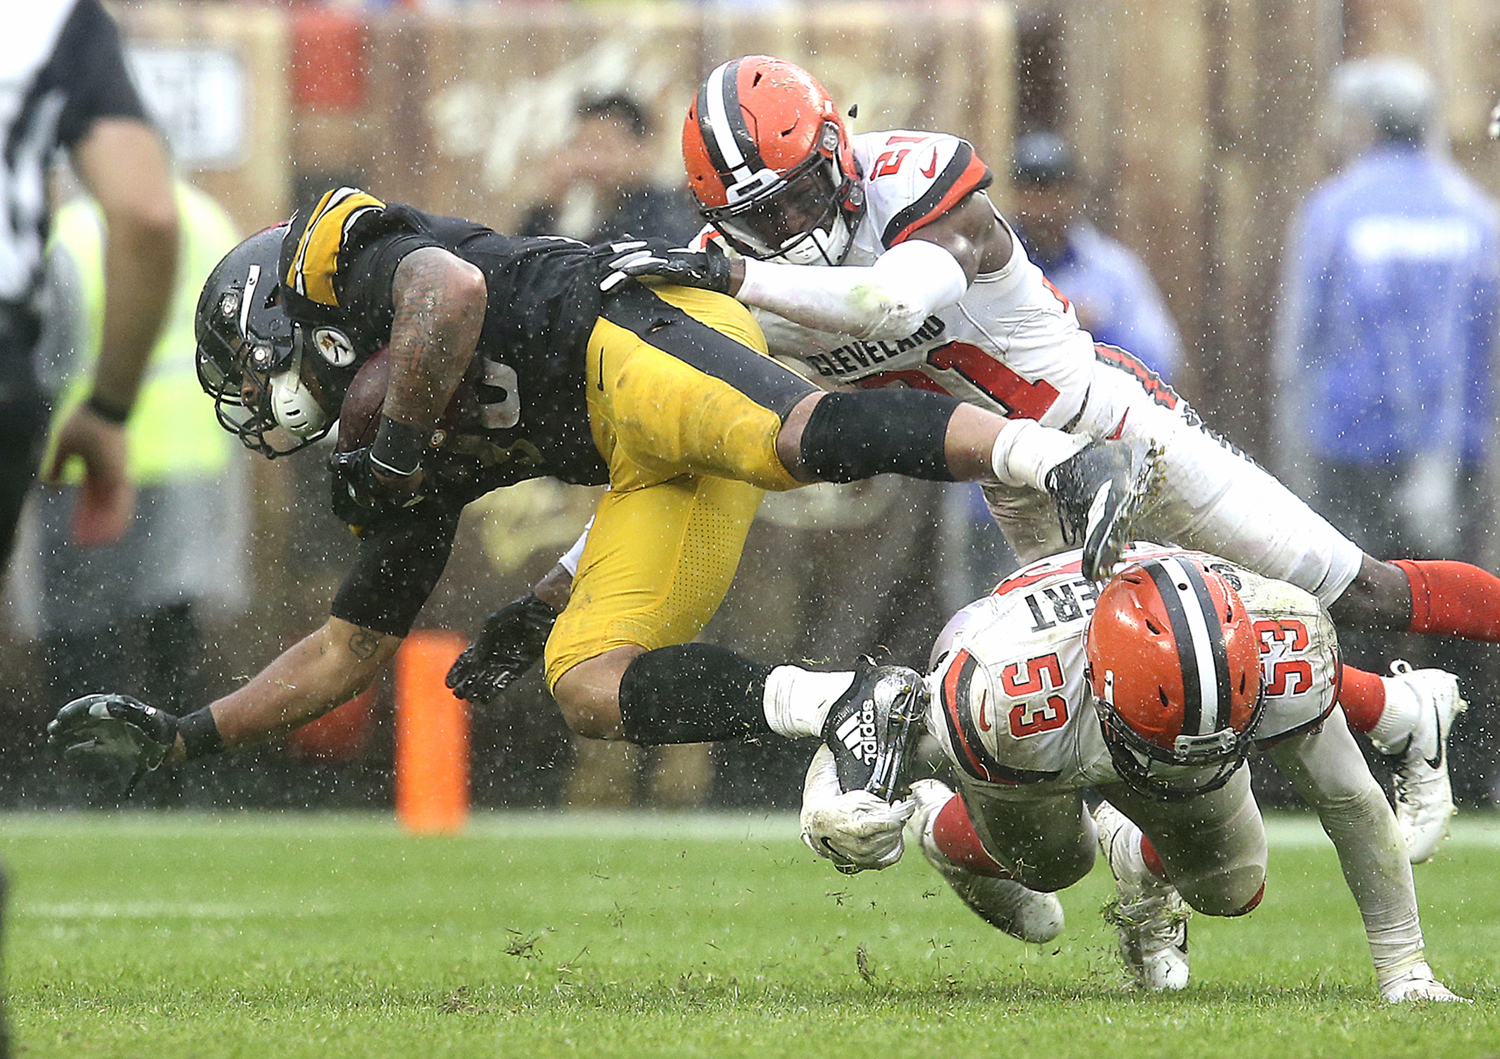 Cleveland Browns Denzel Ward (top) and Joe Schobert take down Pittsburgh Steelers James Conner during overtime Sunday at FirstEnergy Stadium in Cleveland. The game ended in a 21-21 tie.